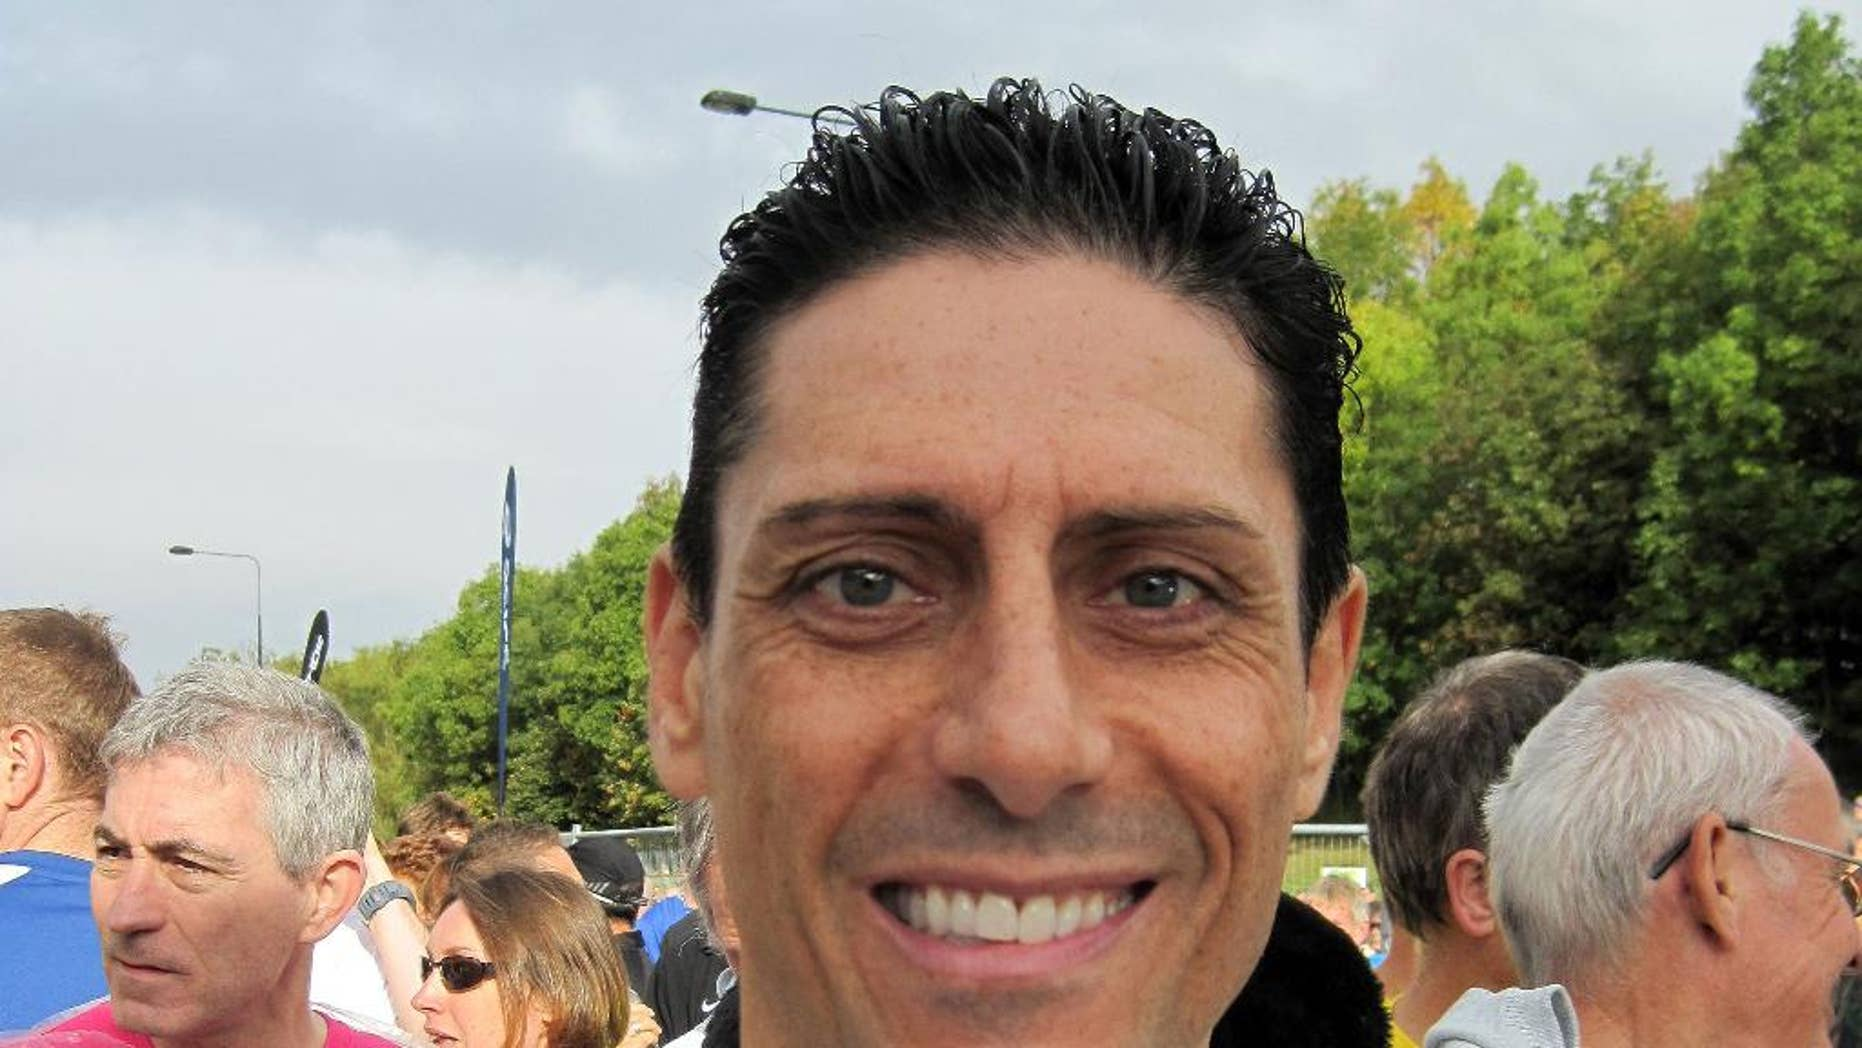 """This is a Sept. 18, 2011 file photo of CJ de Mooi. Quiz-show champion CJ de Mooiwho who appeared on the long-running BBC show """"Eggheads"""" has been arrested on suspicion of committing murder in the Netherlands"""